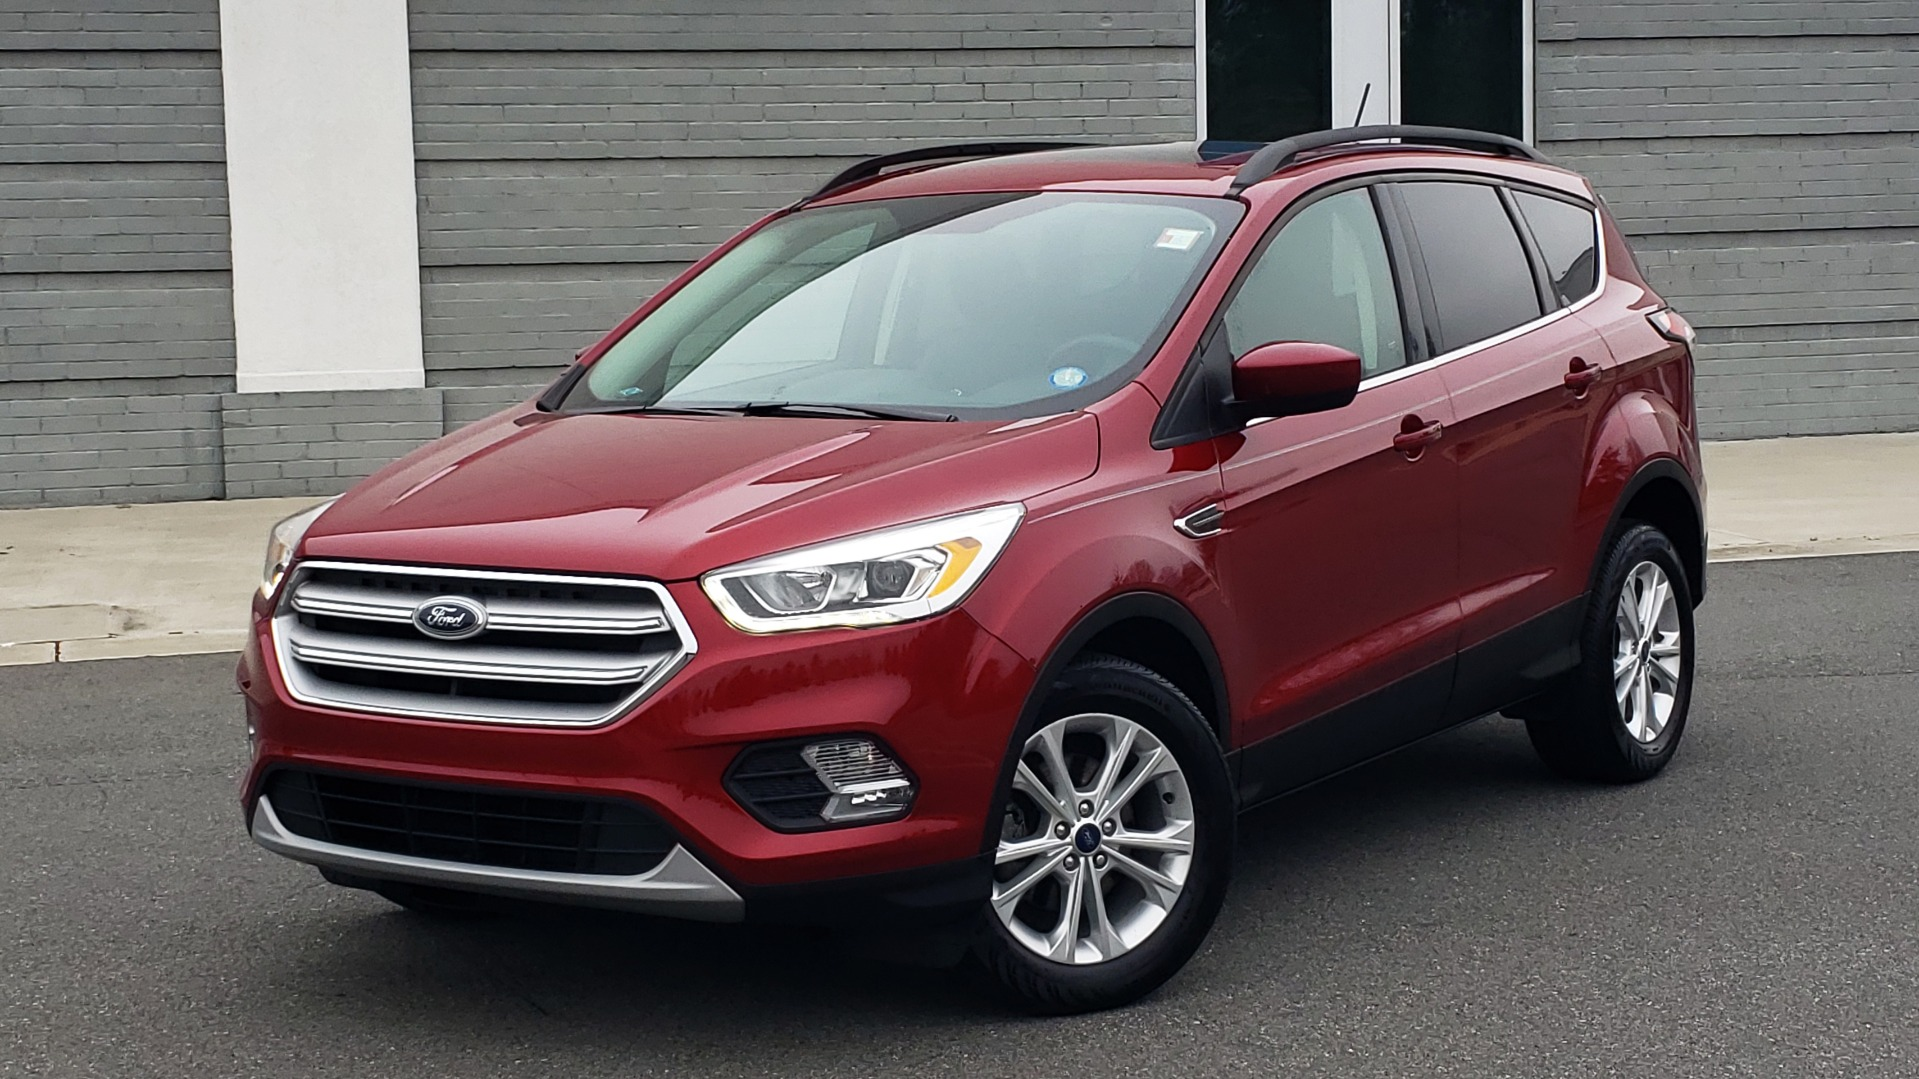 Used 2018 Ford ESCAPE SEL / FWD / 1.5L ECOBOOST / PANO-ROOF / REARVIEW for sale Sold at Formula Imports in Charlotte NC 28227 2